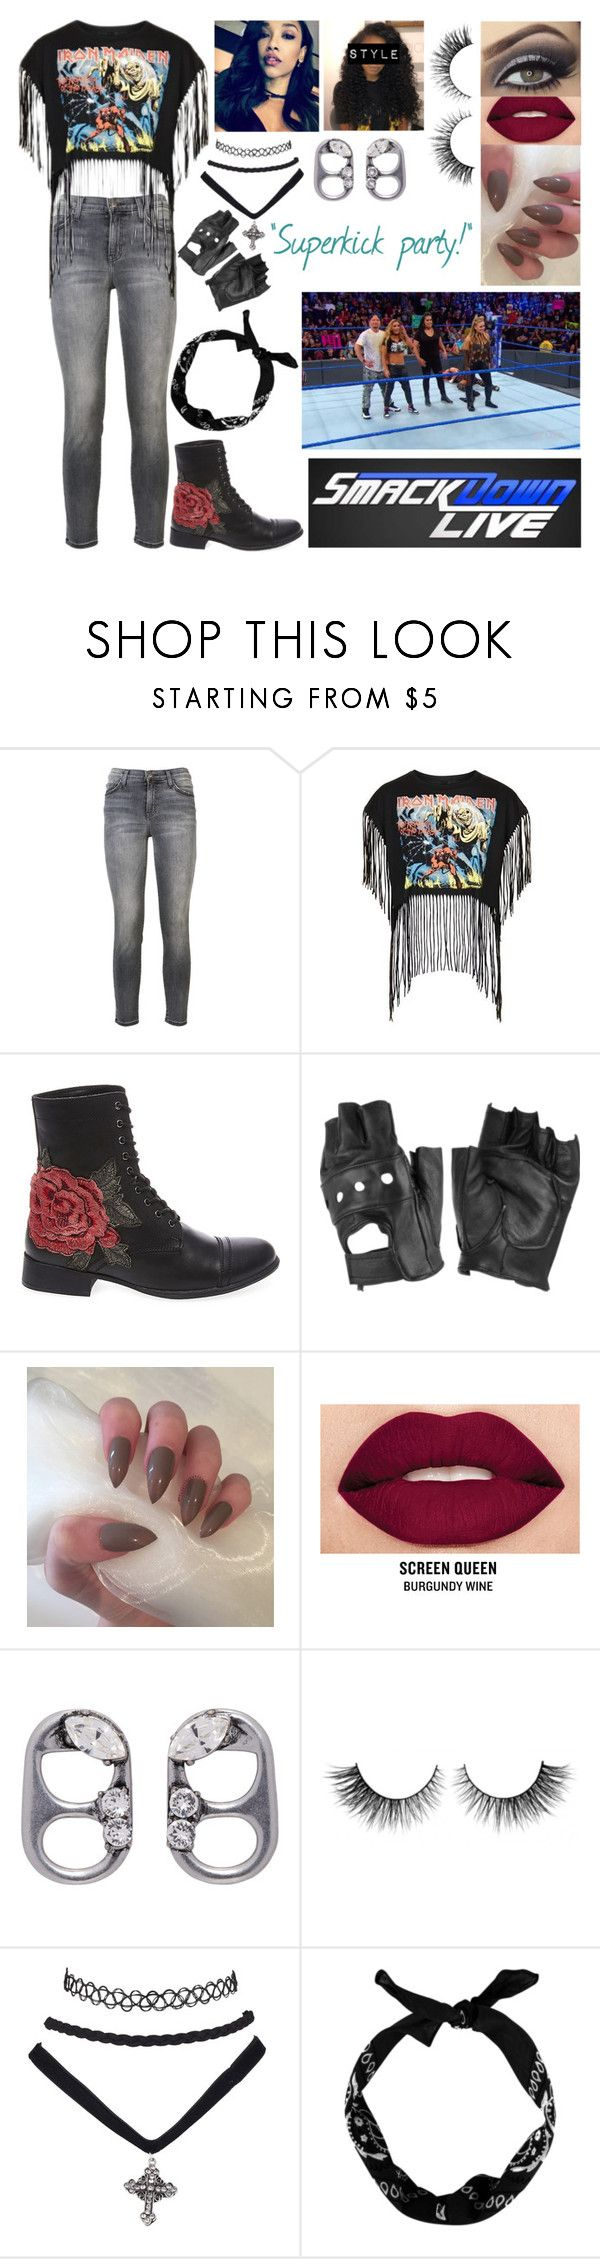 """""""superkick 🤘🏼 xia 🤘🏼"""" by lostboyys ❤ liked on Polyvore featuring Current/Elliott, Topshop, Steve Madden, Charlotte Russe, Smashbox, Marc Jacobs, Rimini, WWE and New Look"""